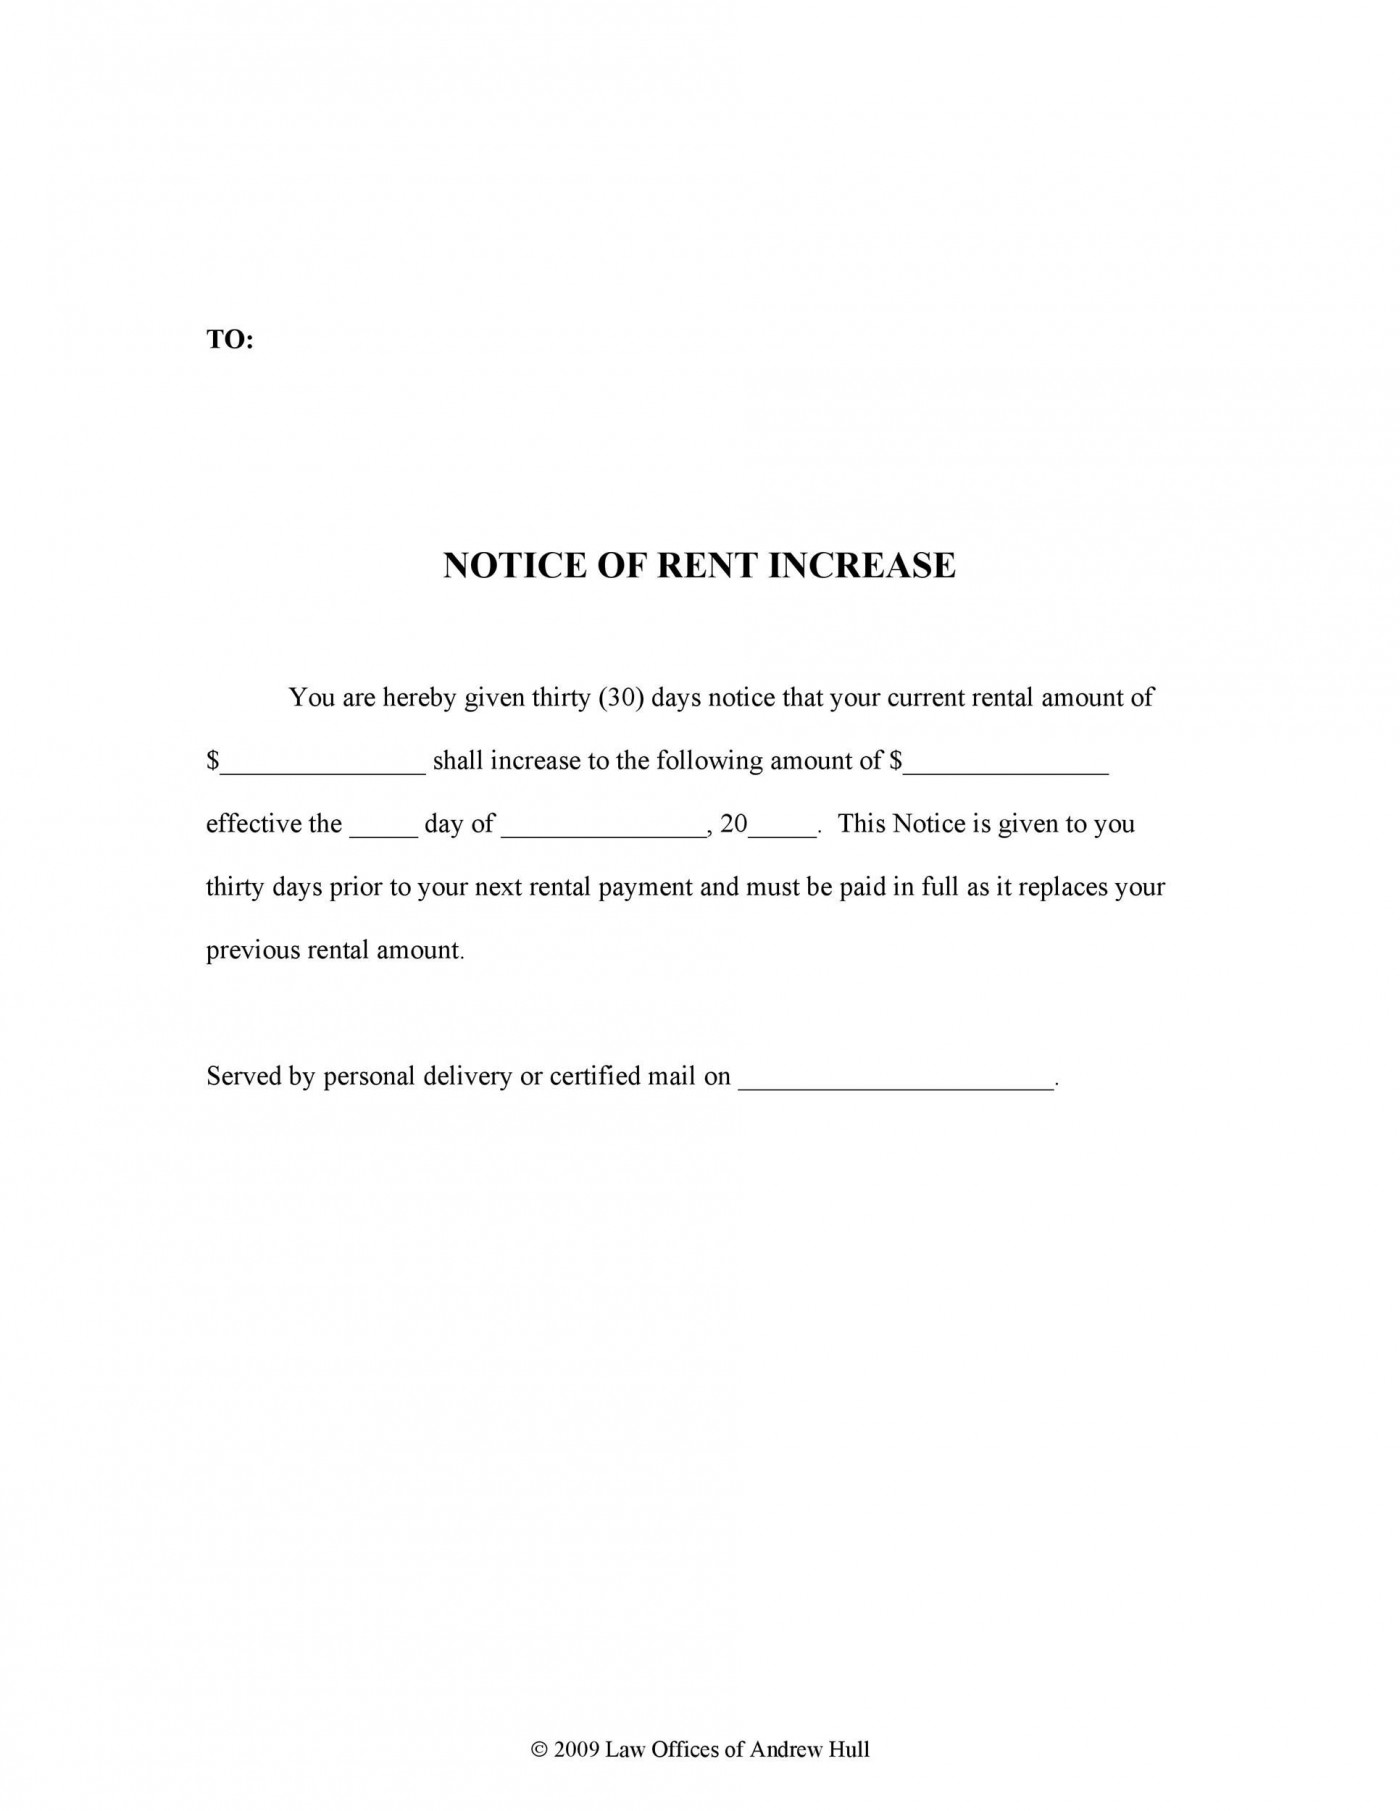 008 Wondrou Rent Increase Letter Template High Resolution  Rental South Africa Nz Scotland1400